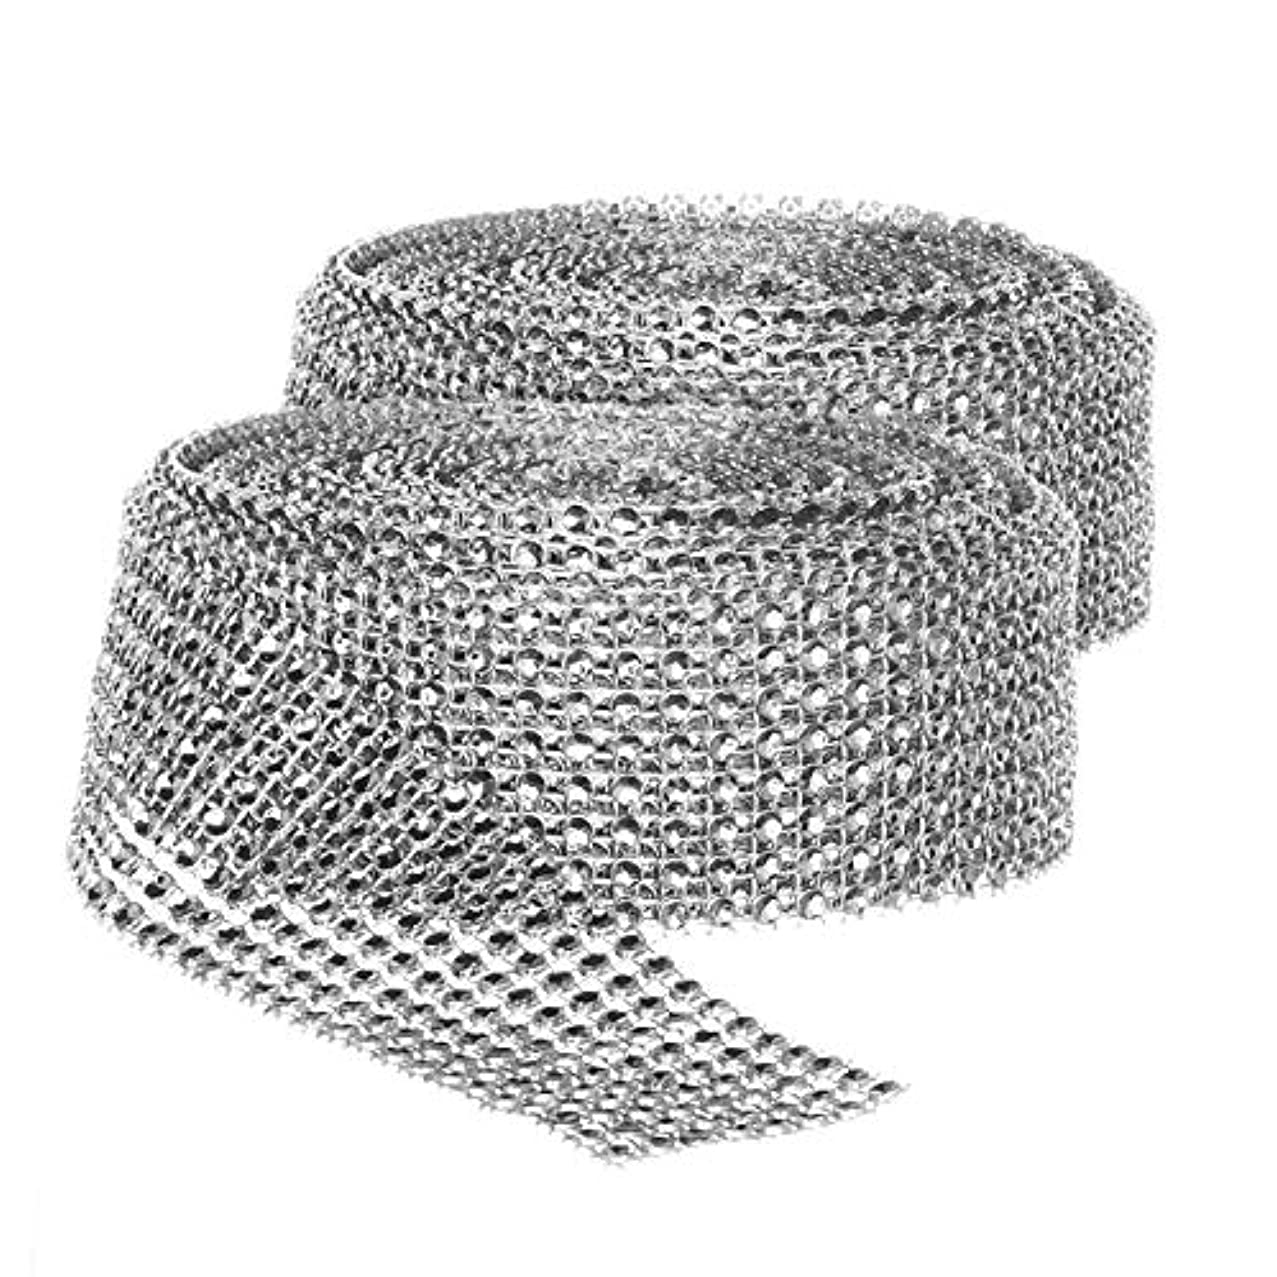 Rhinestone Diamond Bling Wrap Ribbon for Wedding Cake, Party, Holiday & Home Decoration, Silver 8-Rows, (2 Rolls) 10 YDS EA.